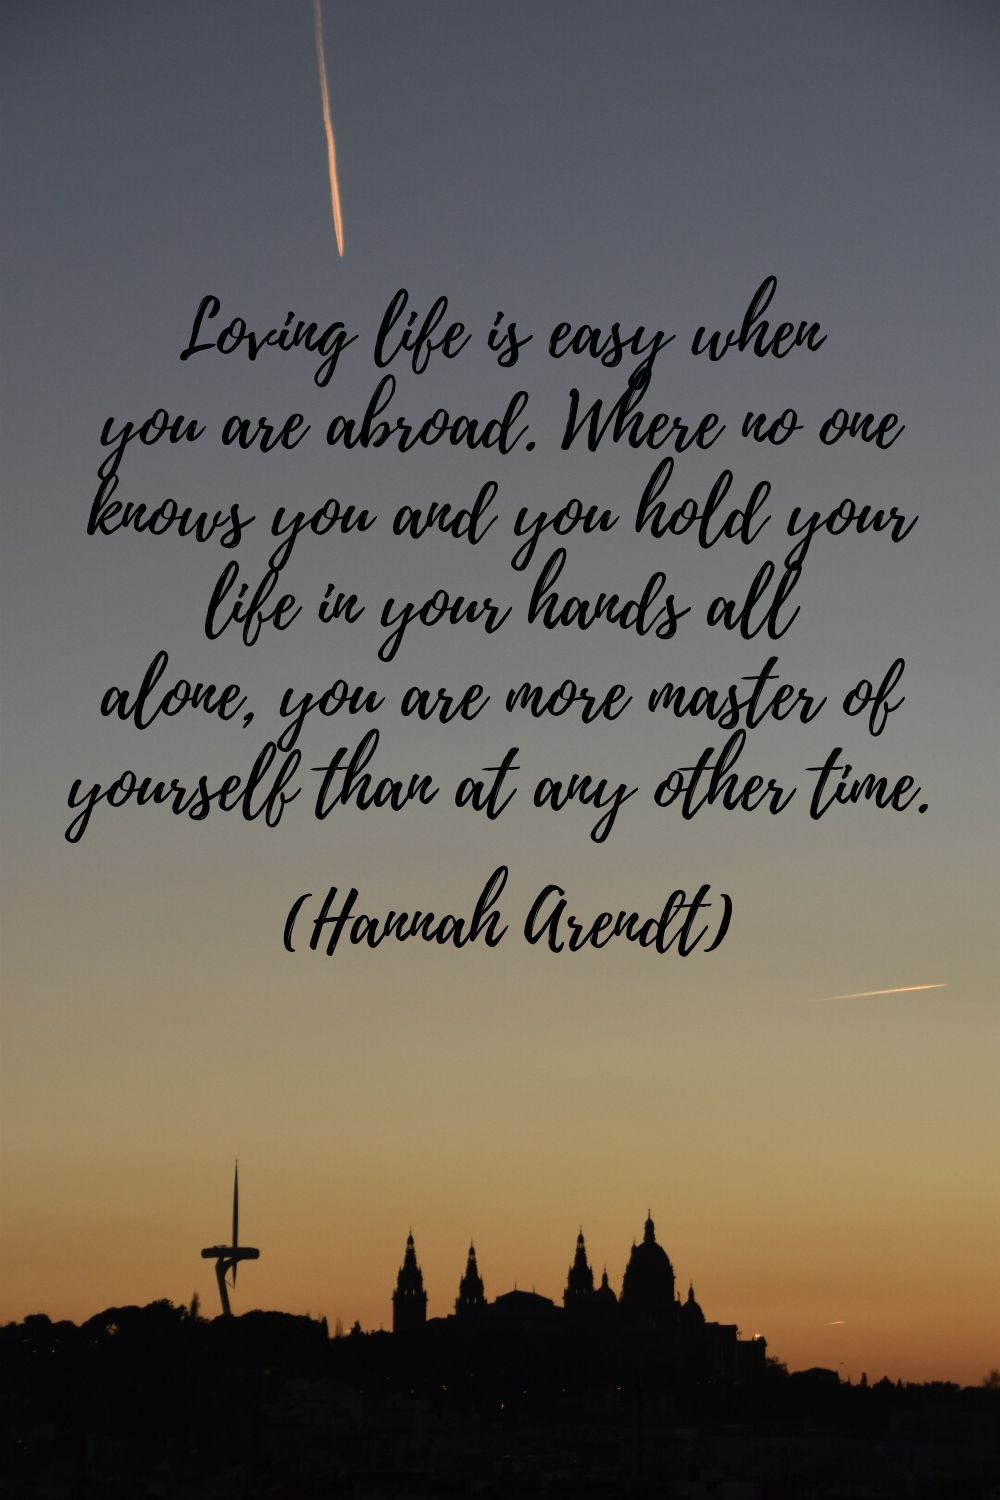 Loving life is easy when you are abroad. Where no one knows you and you hold your life in your hands all alone, you are more master of yourself than at any other time. (Hannah Arendt) - quotes for women who travel